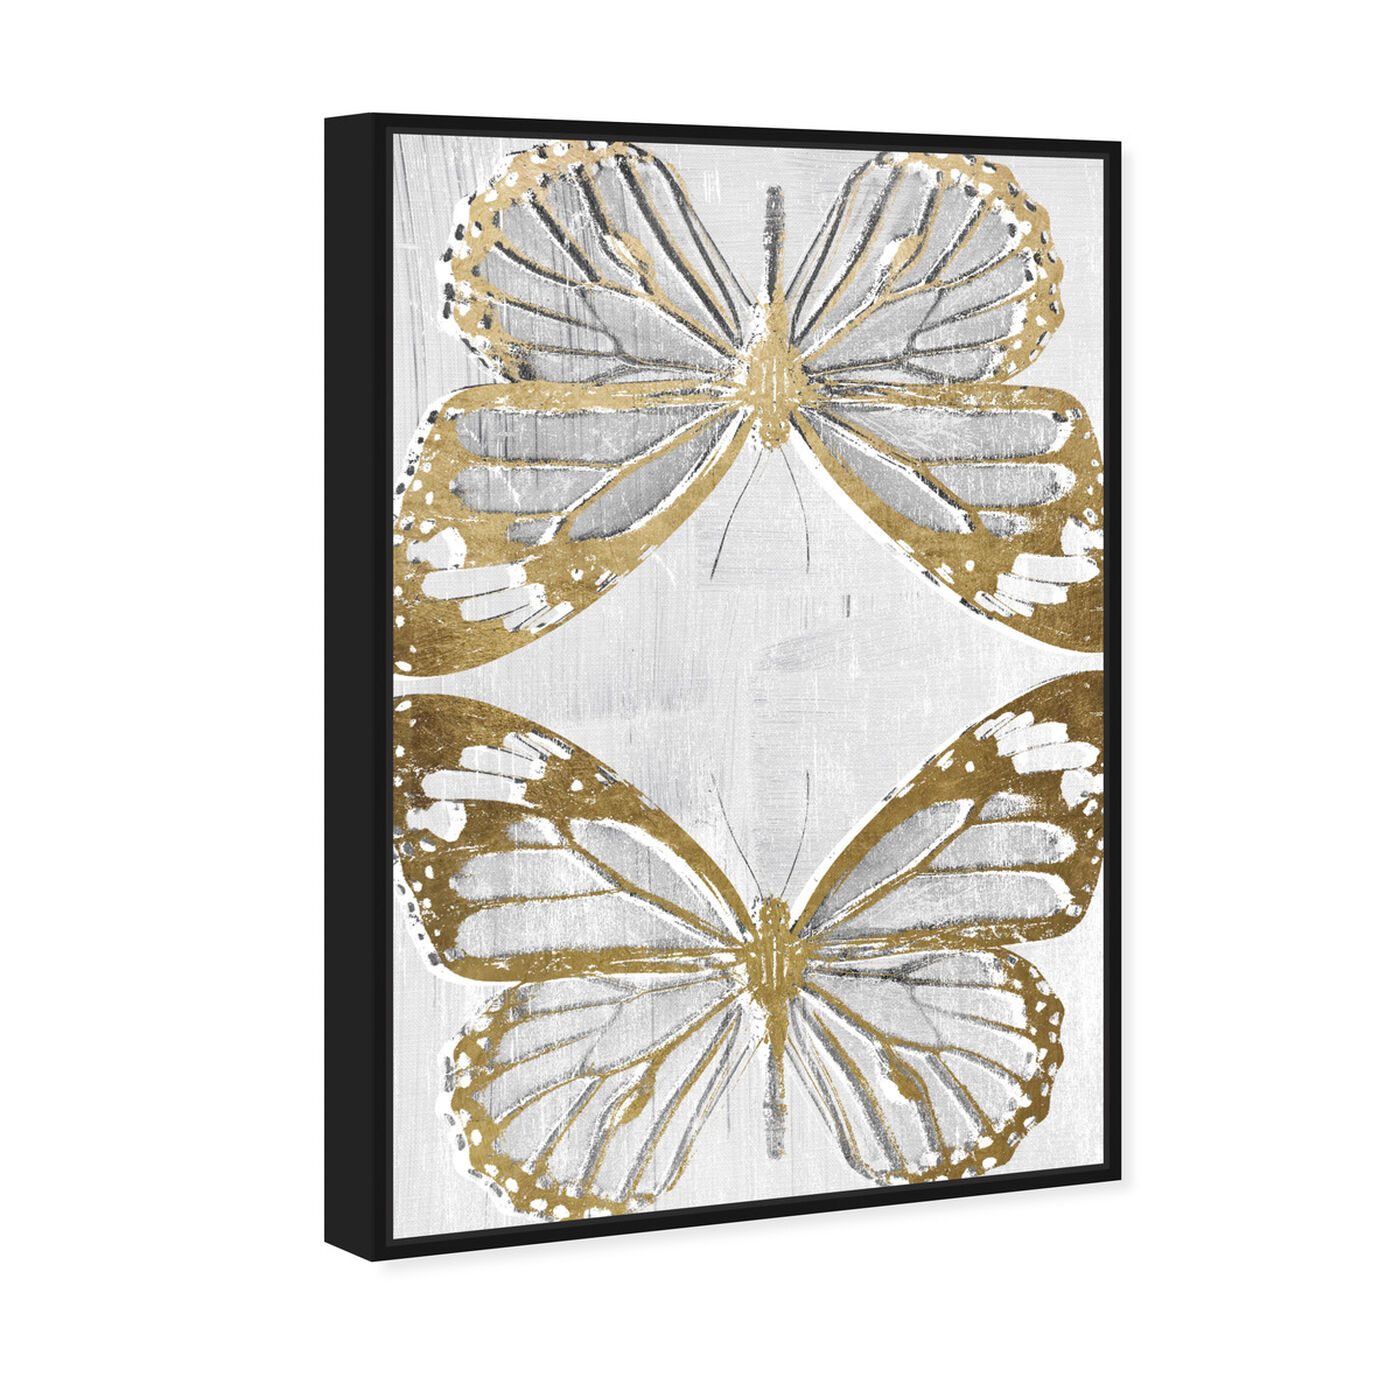 Angled view of Golden Butterflies featuring animals and insects art.